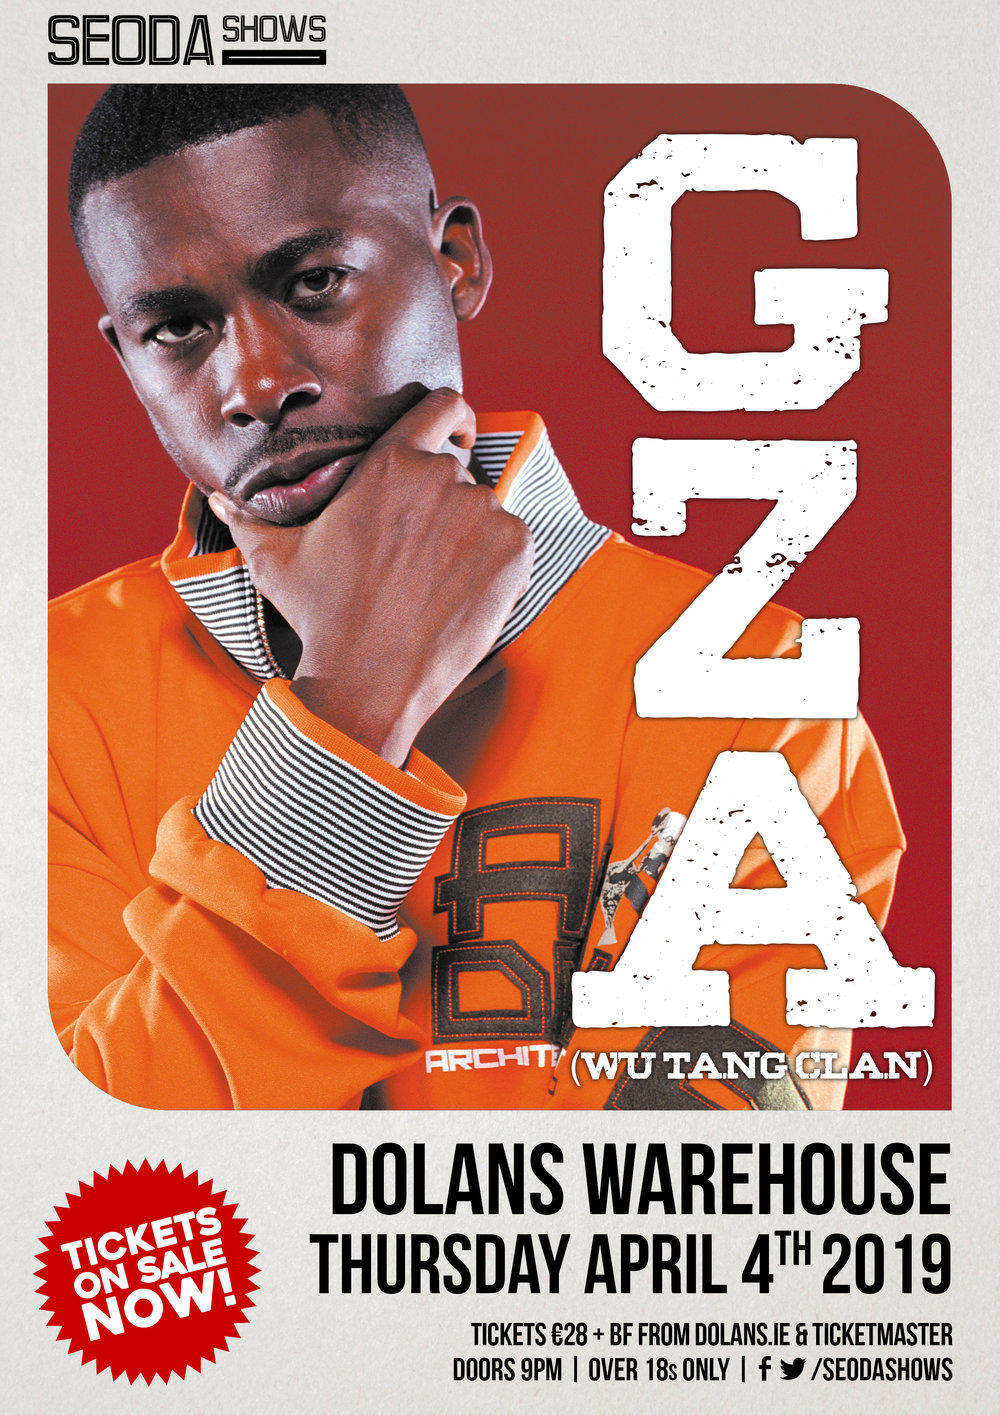 GZA Seoda Show Dolans Limerick April 4th Wu Tang Clan